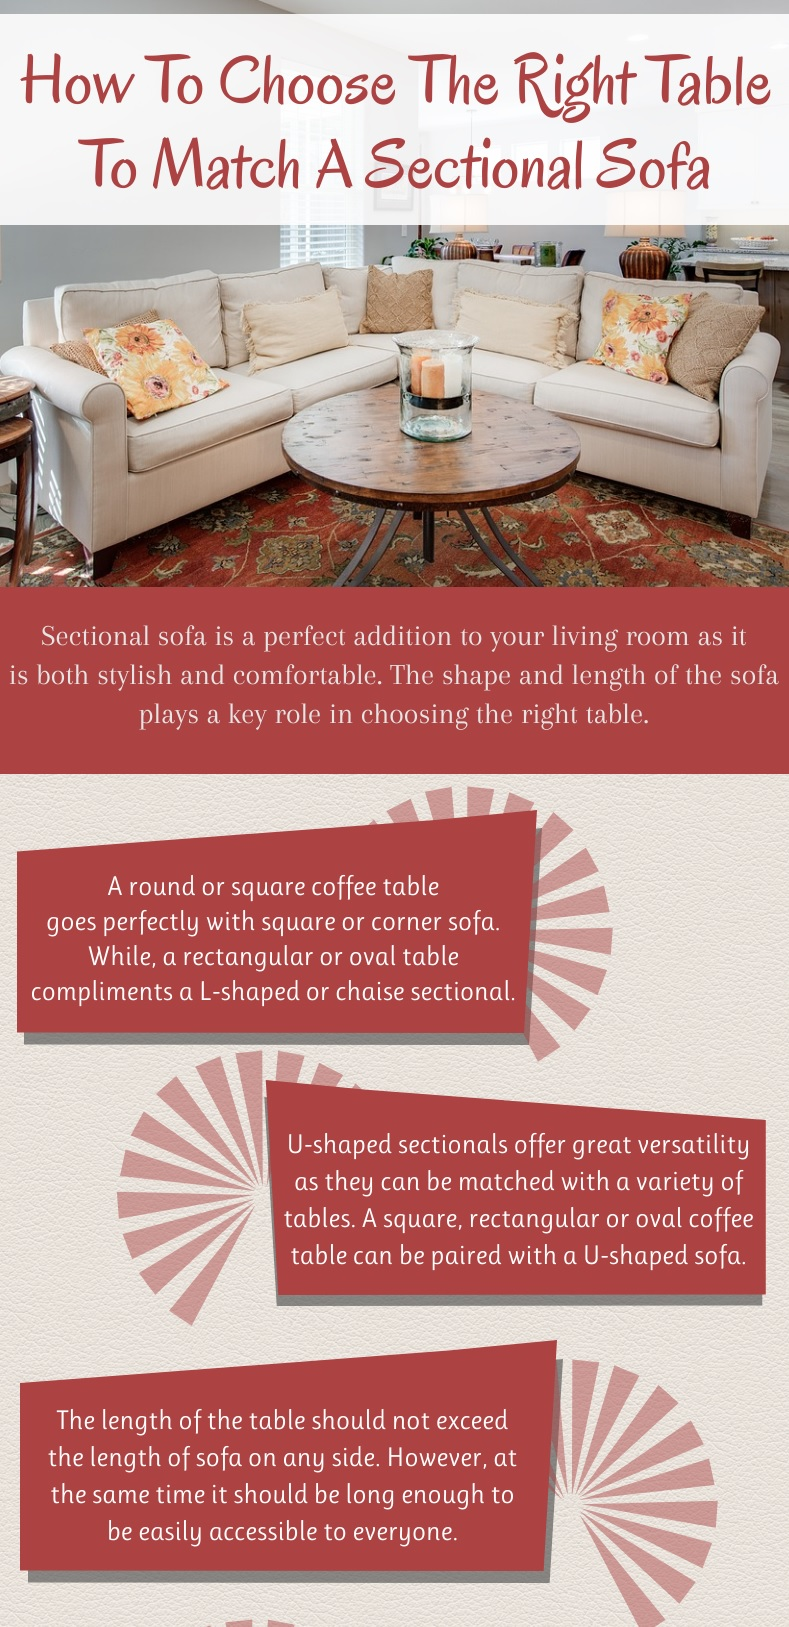 Groovy How To Choose The Right Table To Match A Sectional Sofa Short Links Chair Design For Home Short Linksinfo